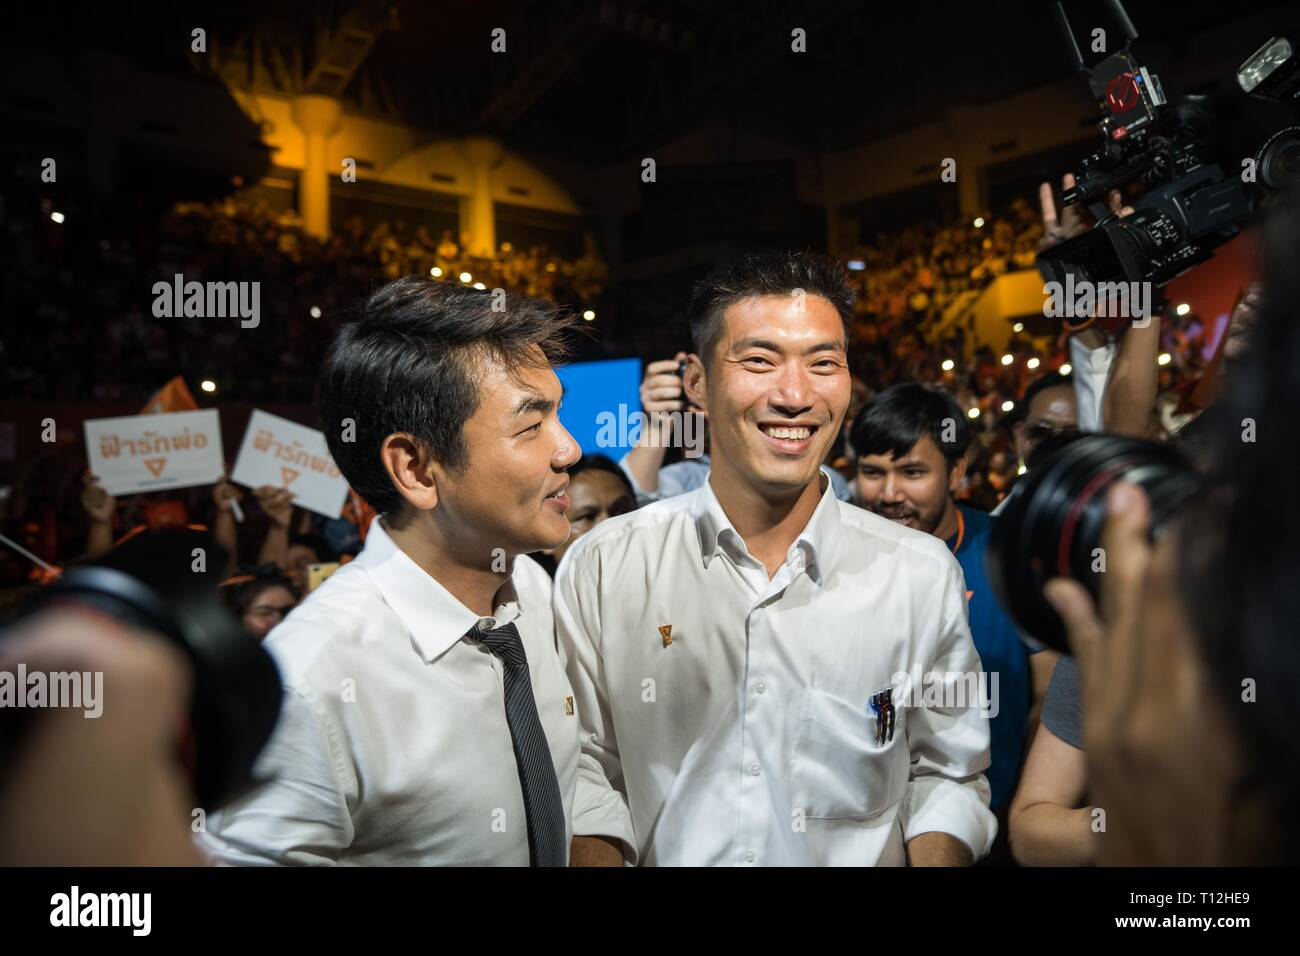 Secretary general of Future Forward Party Piyabutr Saengkanokkul and Future Forward Party Leader Thanathorn Juangroongruangkit seen during the Future Forward Party latest rally before the Thai General Election at the Thai-Japanese Stadium in Bangkok. The country will hold the general election on March 24, 2019, five years after the May 2014 military coup Stock Photo